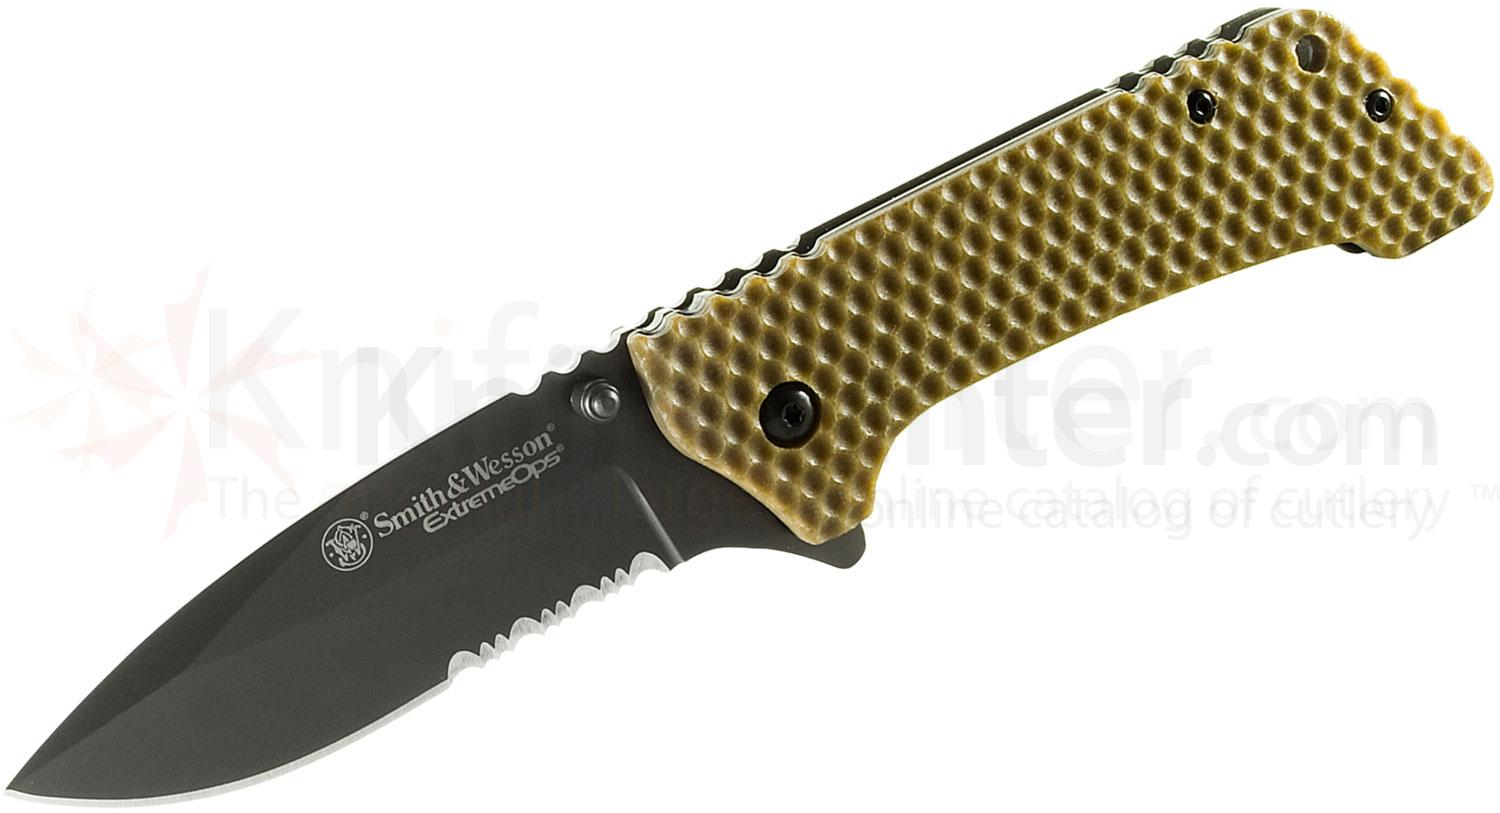 Smith & Wesson Extreme Ops Small Tactical Folding 3.2 inch Black Combo Blade, Brown G10 Handle